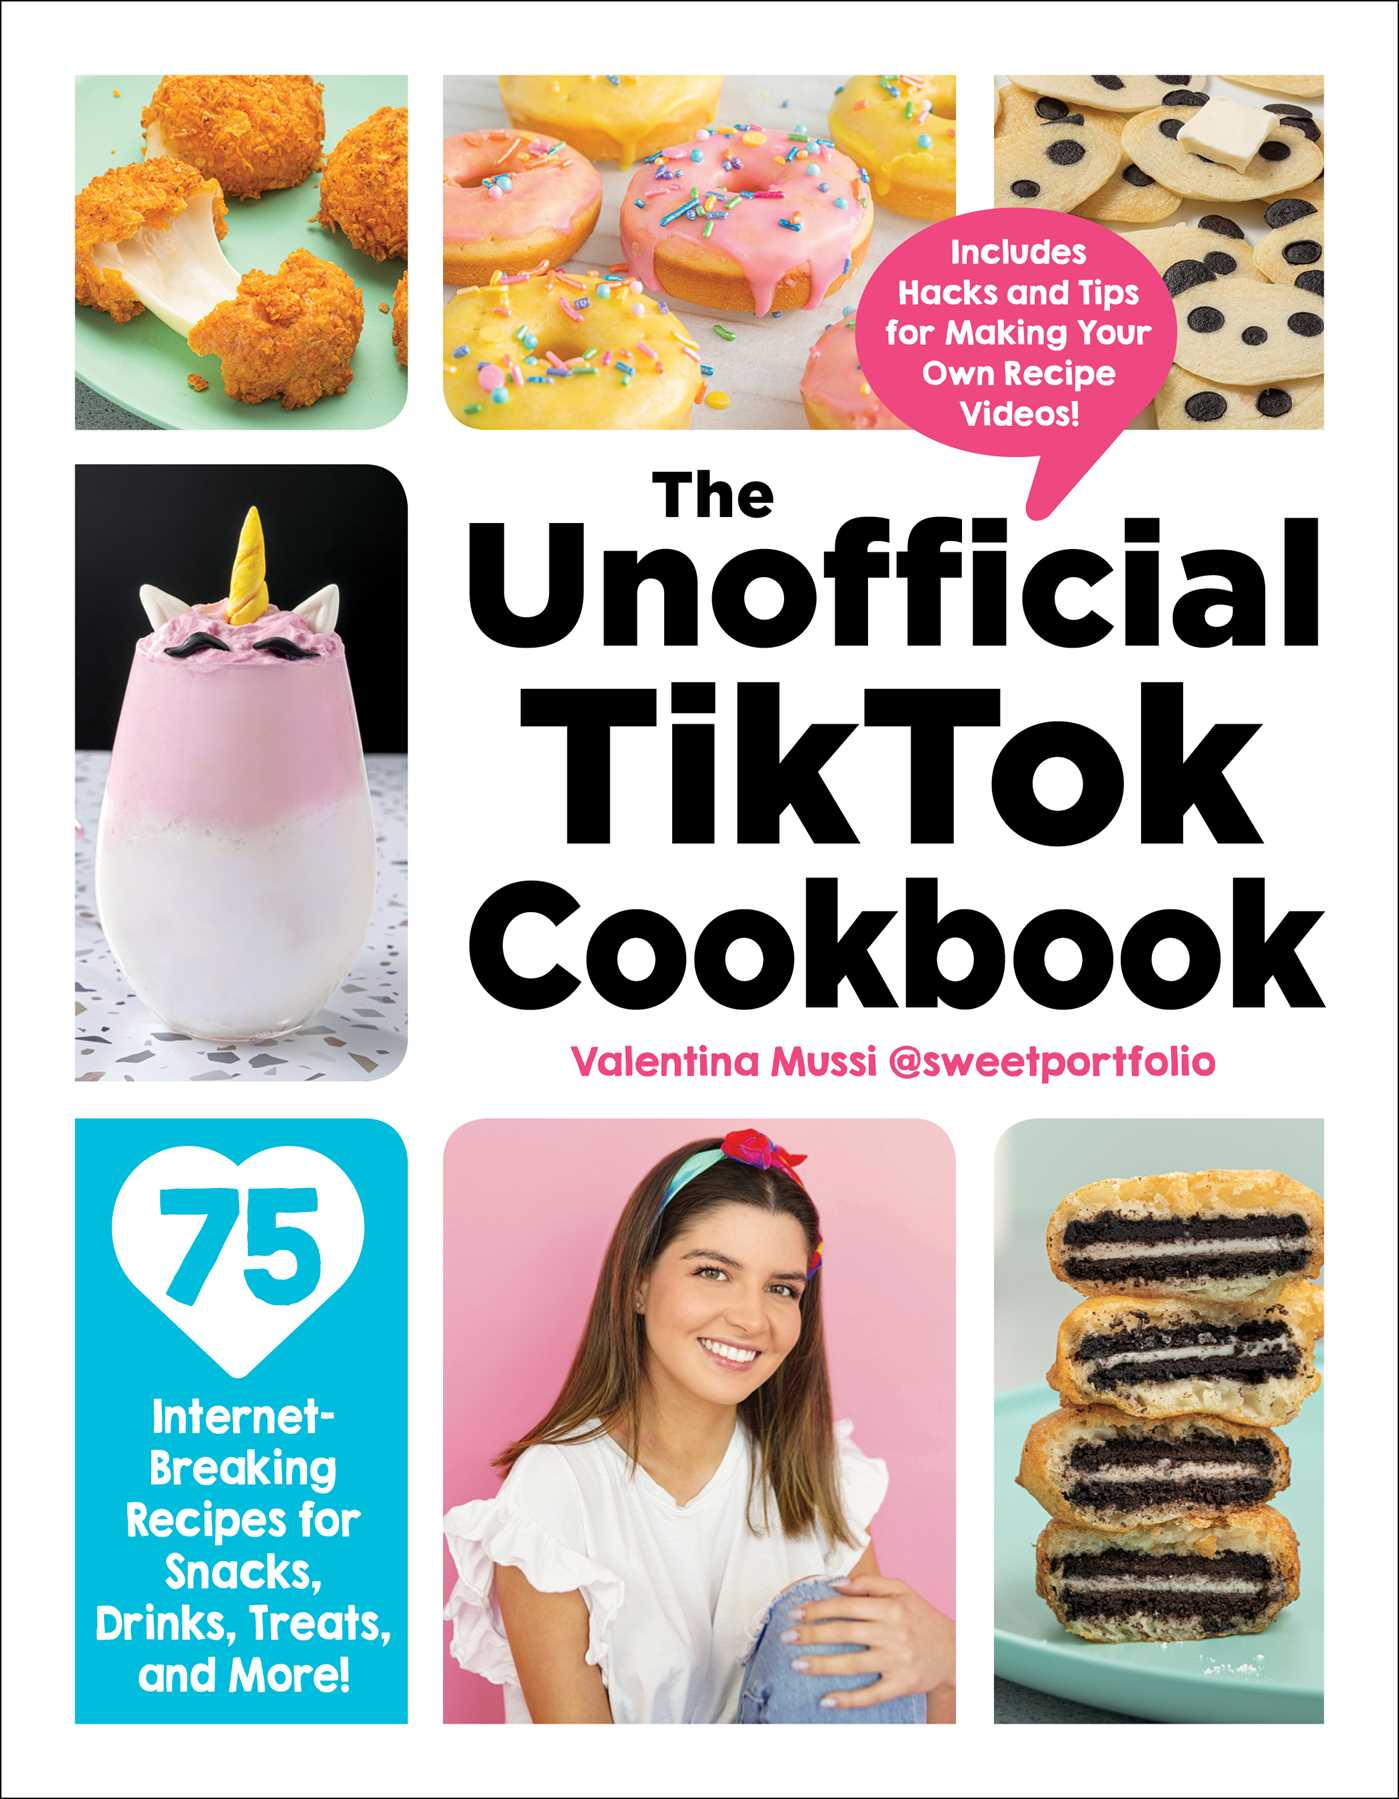 The Unofficial TikTok Cookbook: 75 Internet-Breaking Recipes for Snacks Drinks Treats, and More!, Cooking, Food, TikTok, Baking, Fun, Snacks, Non-Fiction, Unicorn, Valentina Mussi